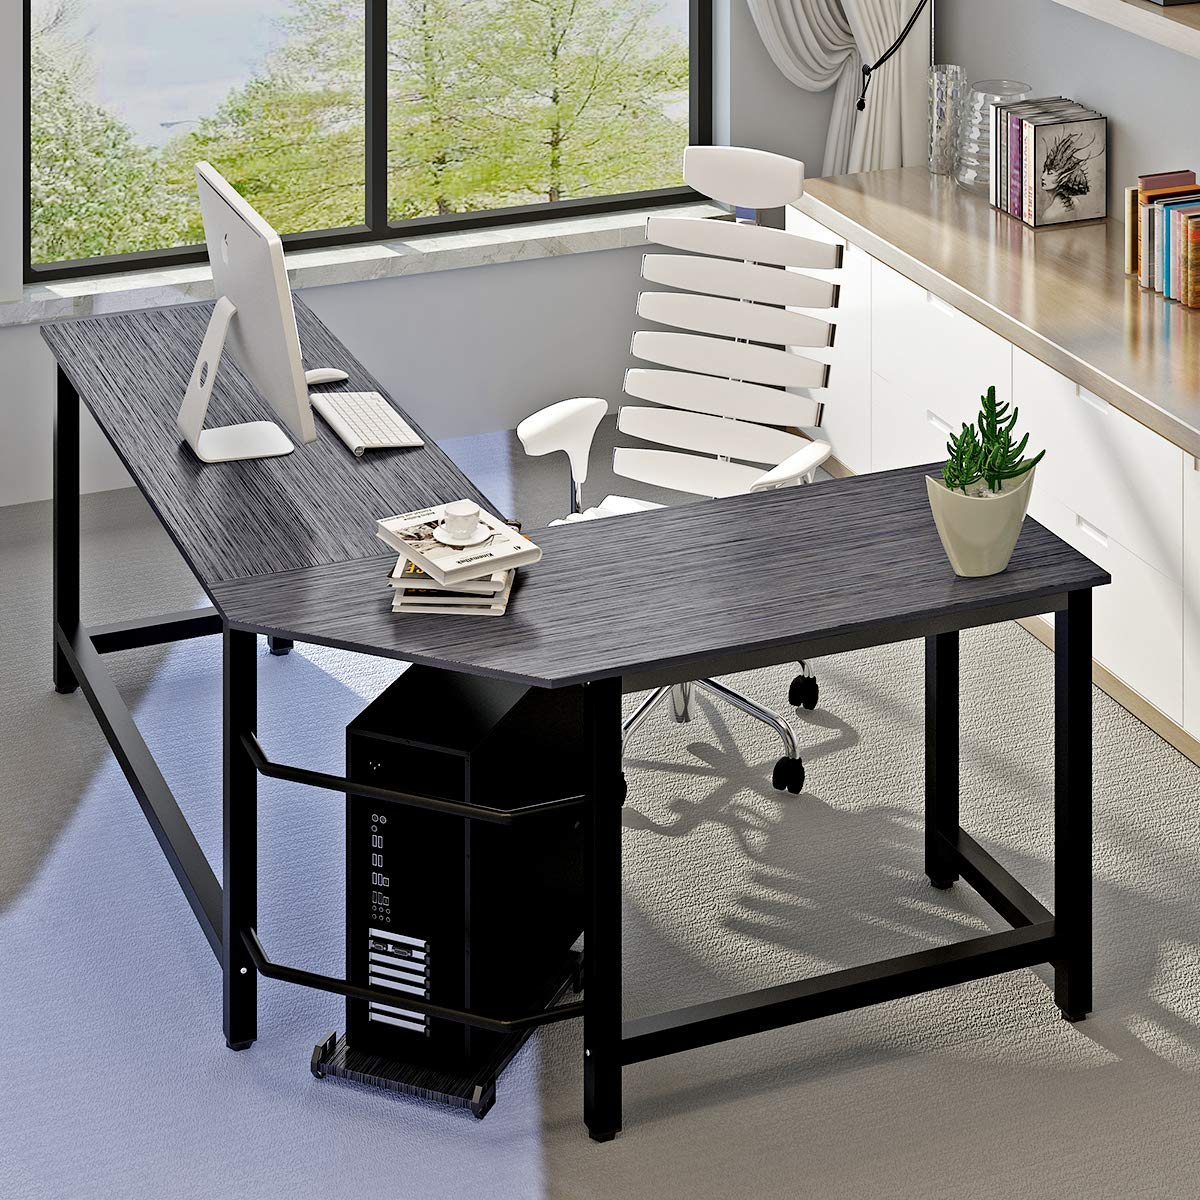 Amazon com modern computer desk l shaped corner desk home office desksmore stable structure tabledesign by ulikit kitchen dining